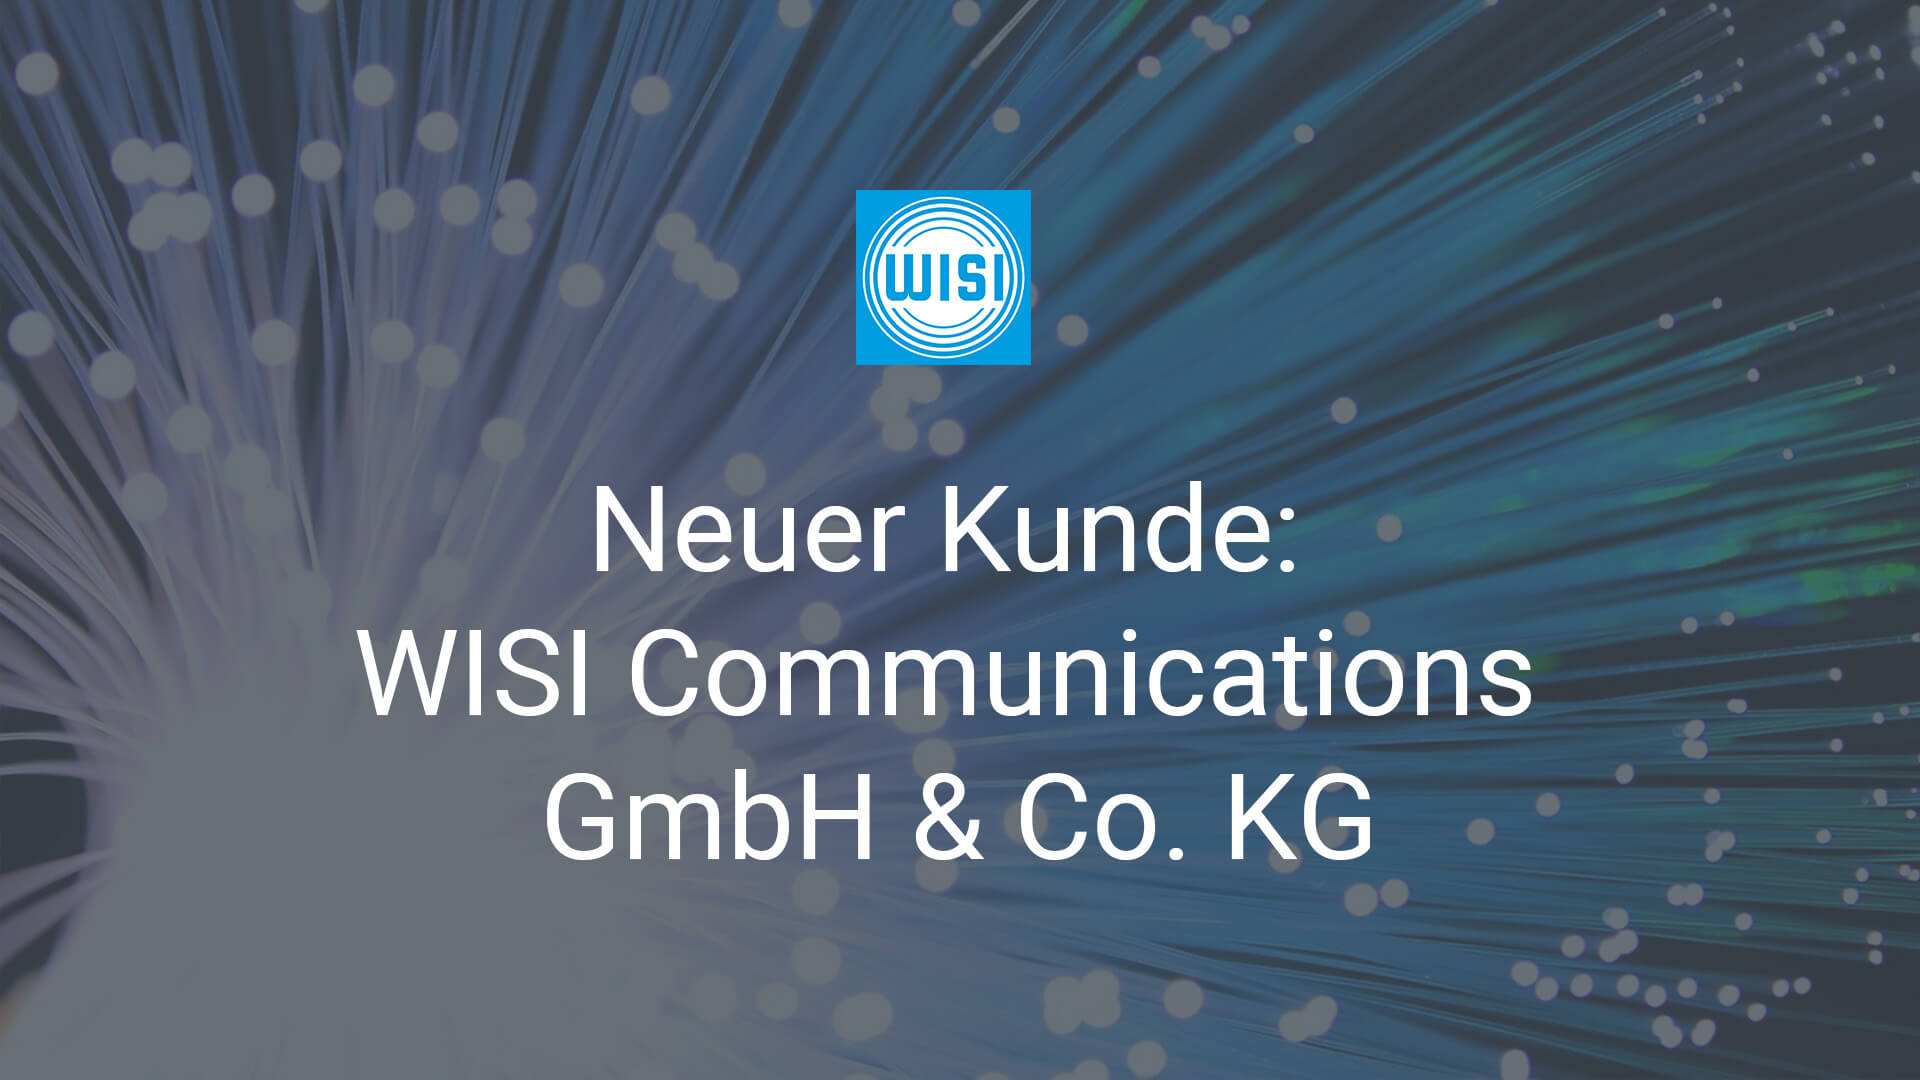 Neuer Kunde: WISI Communications